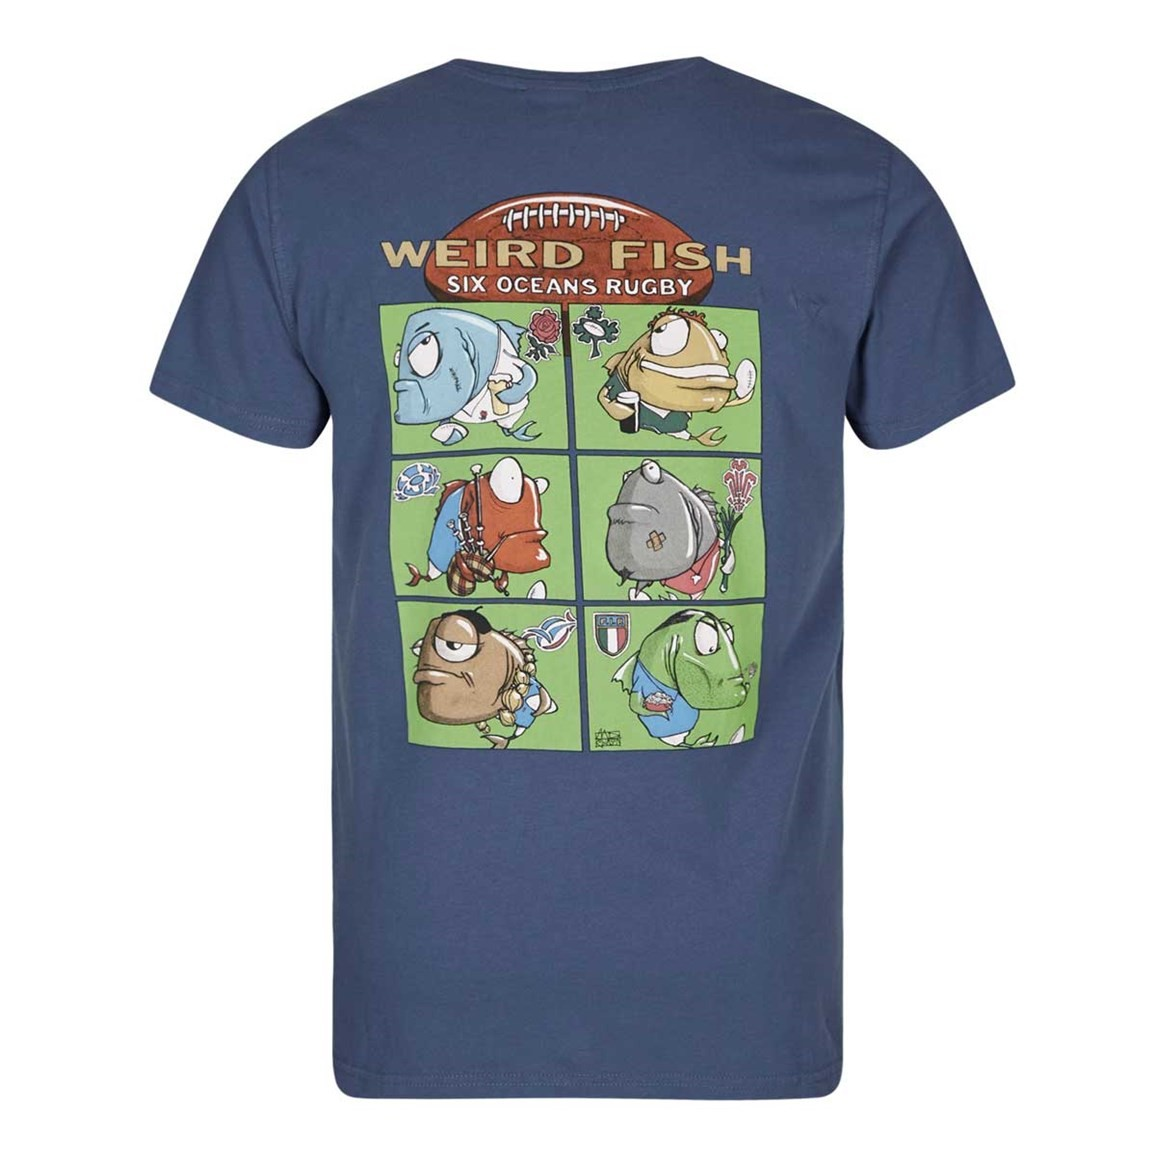 Weird Fish Six Oceans Cotton Printed Artist T-Shirt Ensign Blue